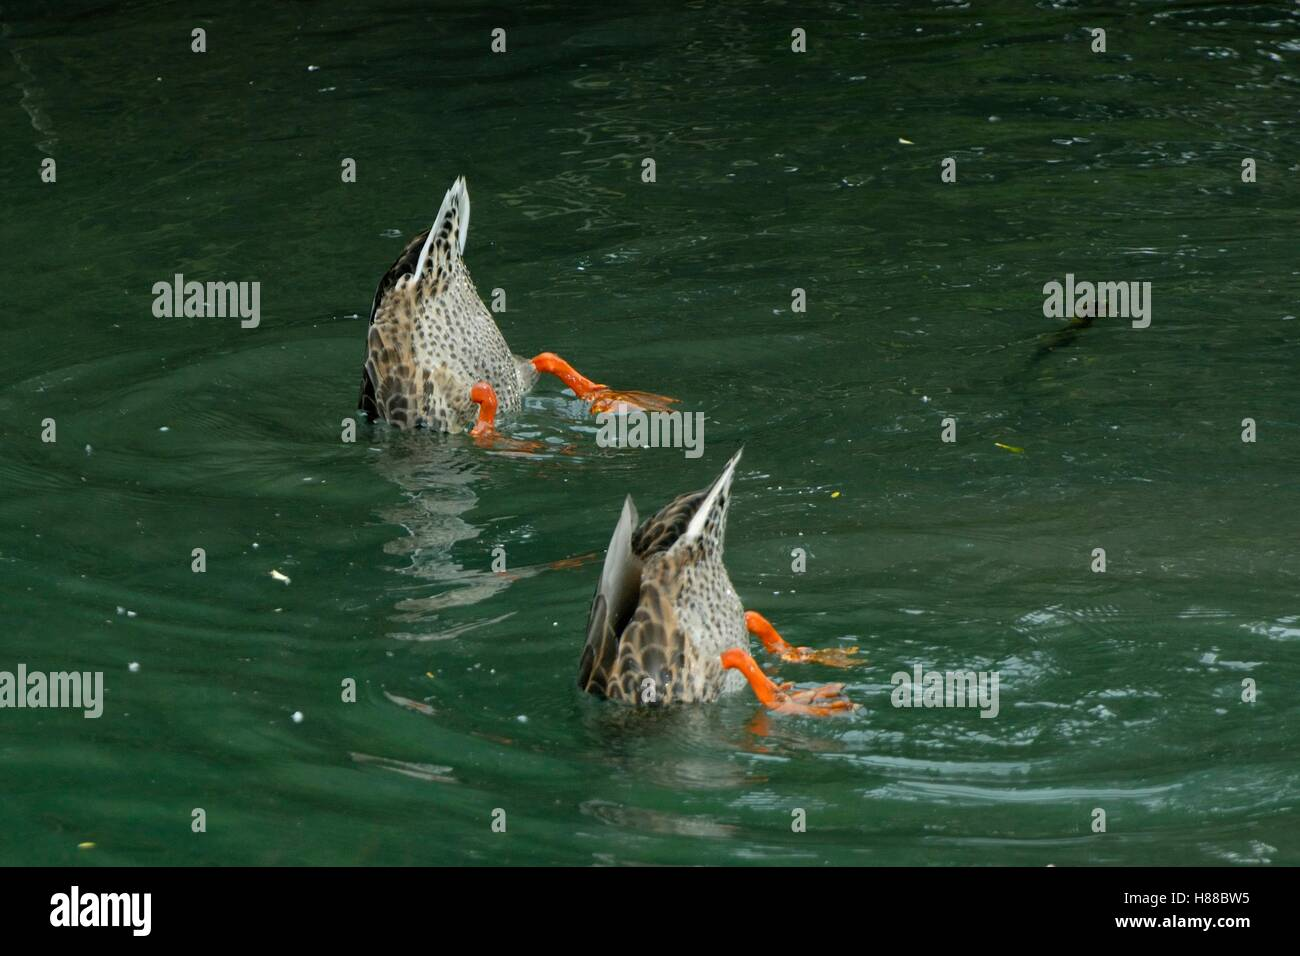 Synchronized duck swimming - Stock Image